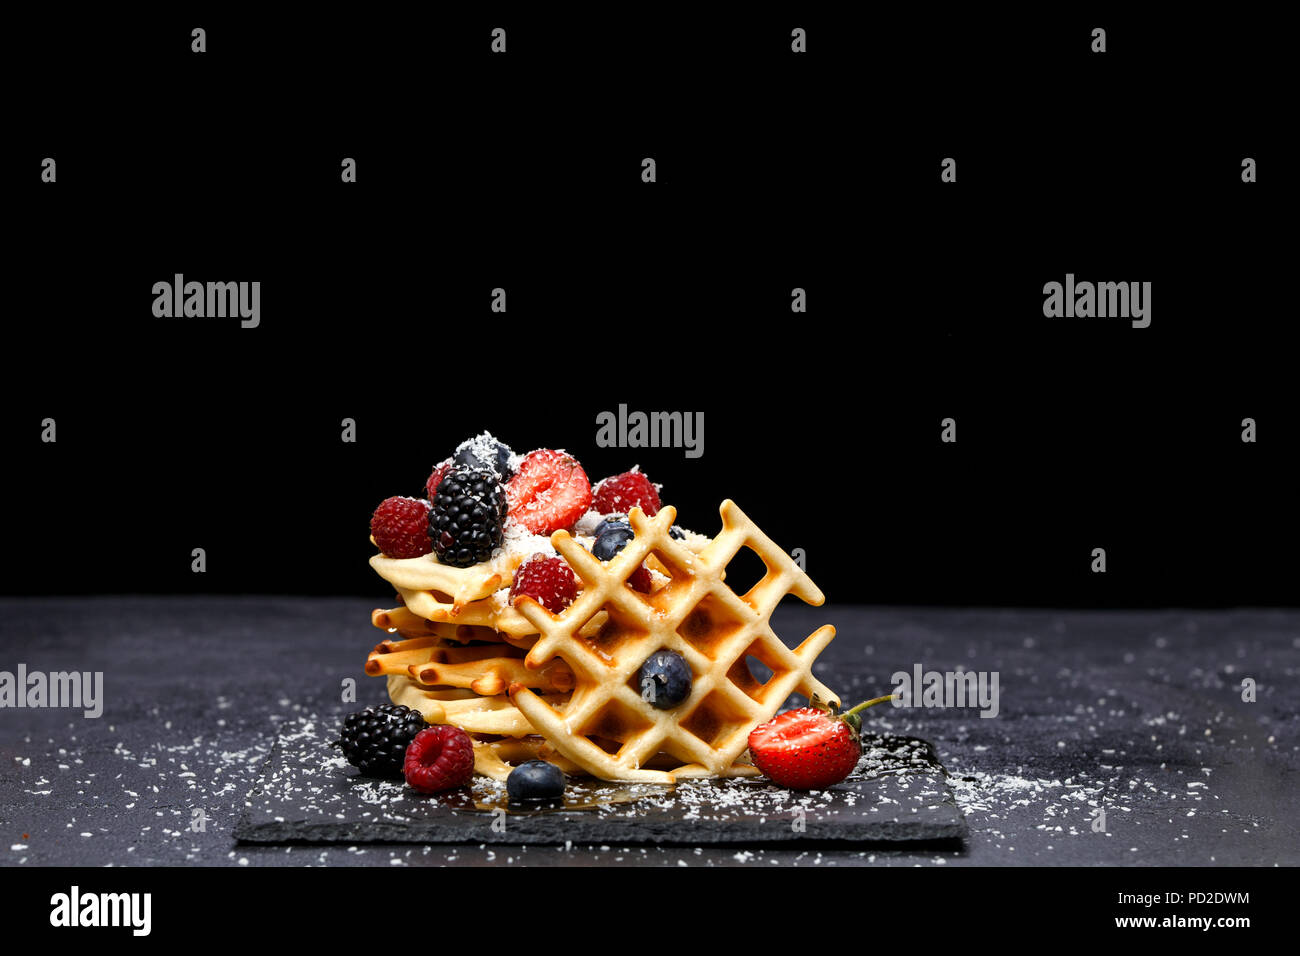 Photo of viennese wafers with fresh raspberries, strawberries sprinkled with powdered sugar on blackboard against blank background - Stock Image